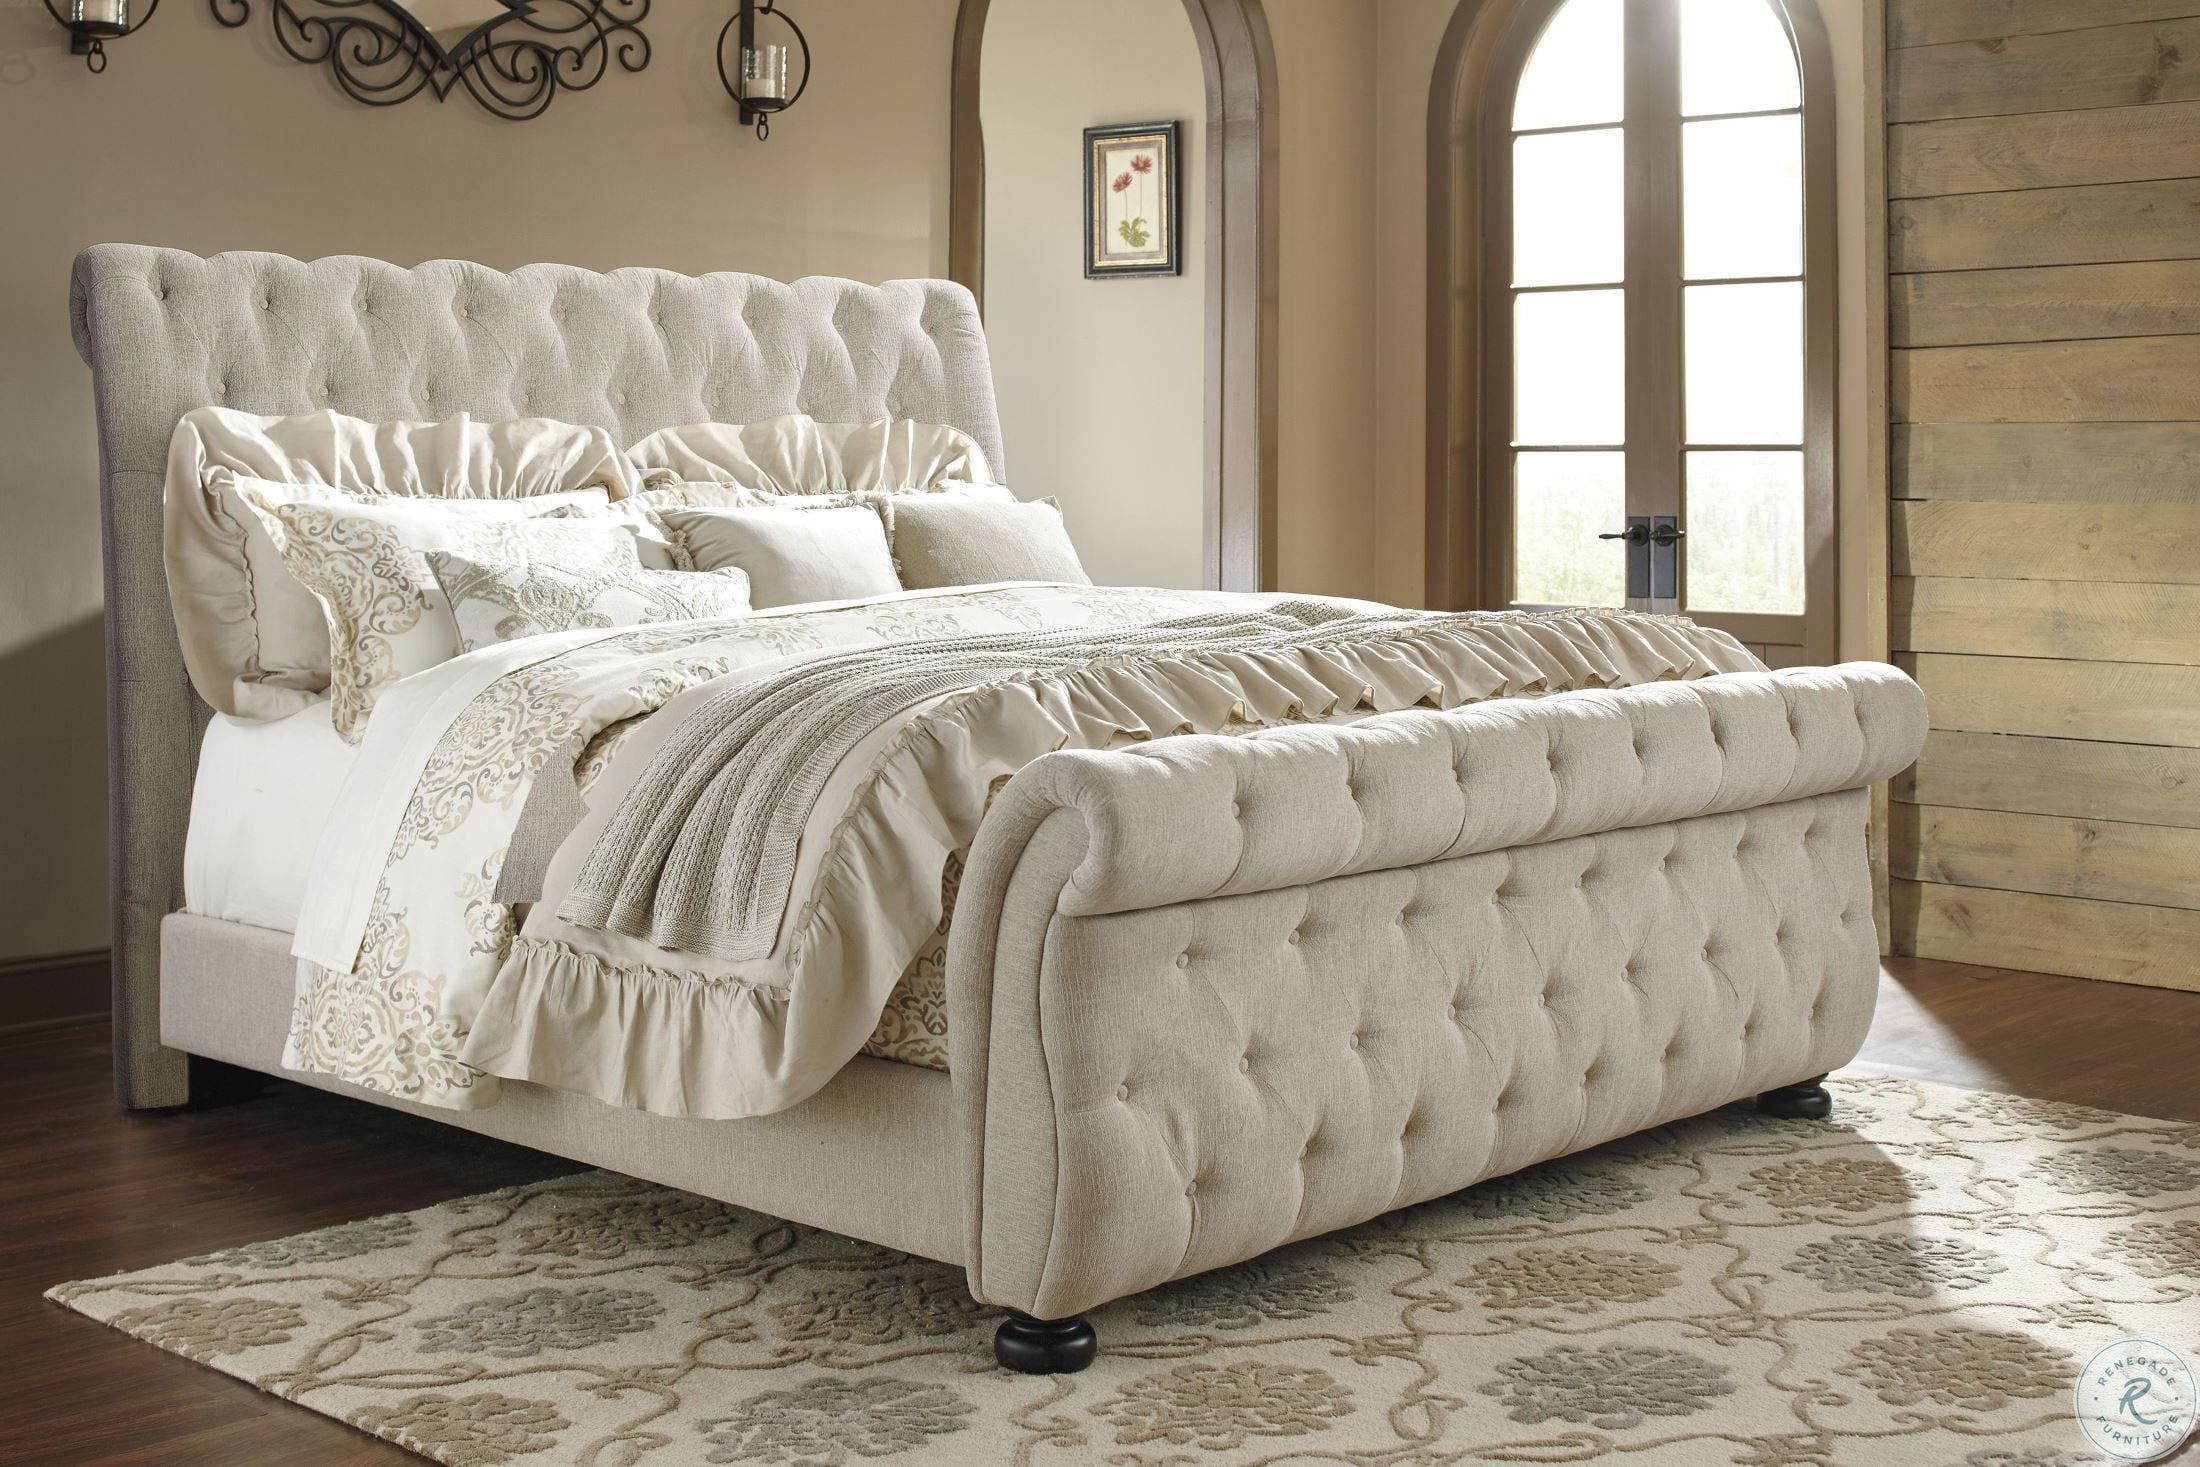 New Bohemian The Boho King Chic Upholstered Sleigh Bed In 2020 Upholstered Sleigh Bed Luxurious Bedrooms Bed Linens Luxury